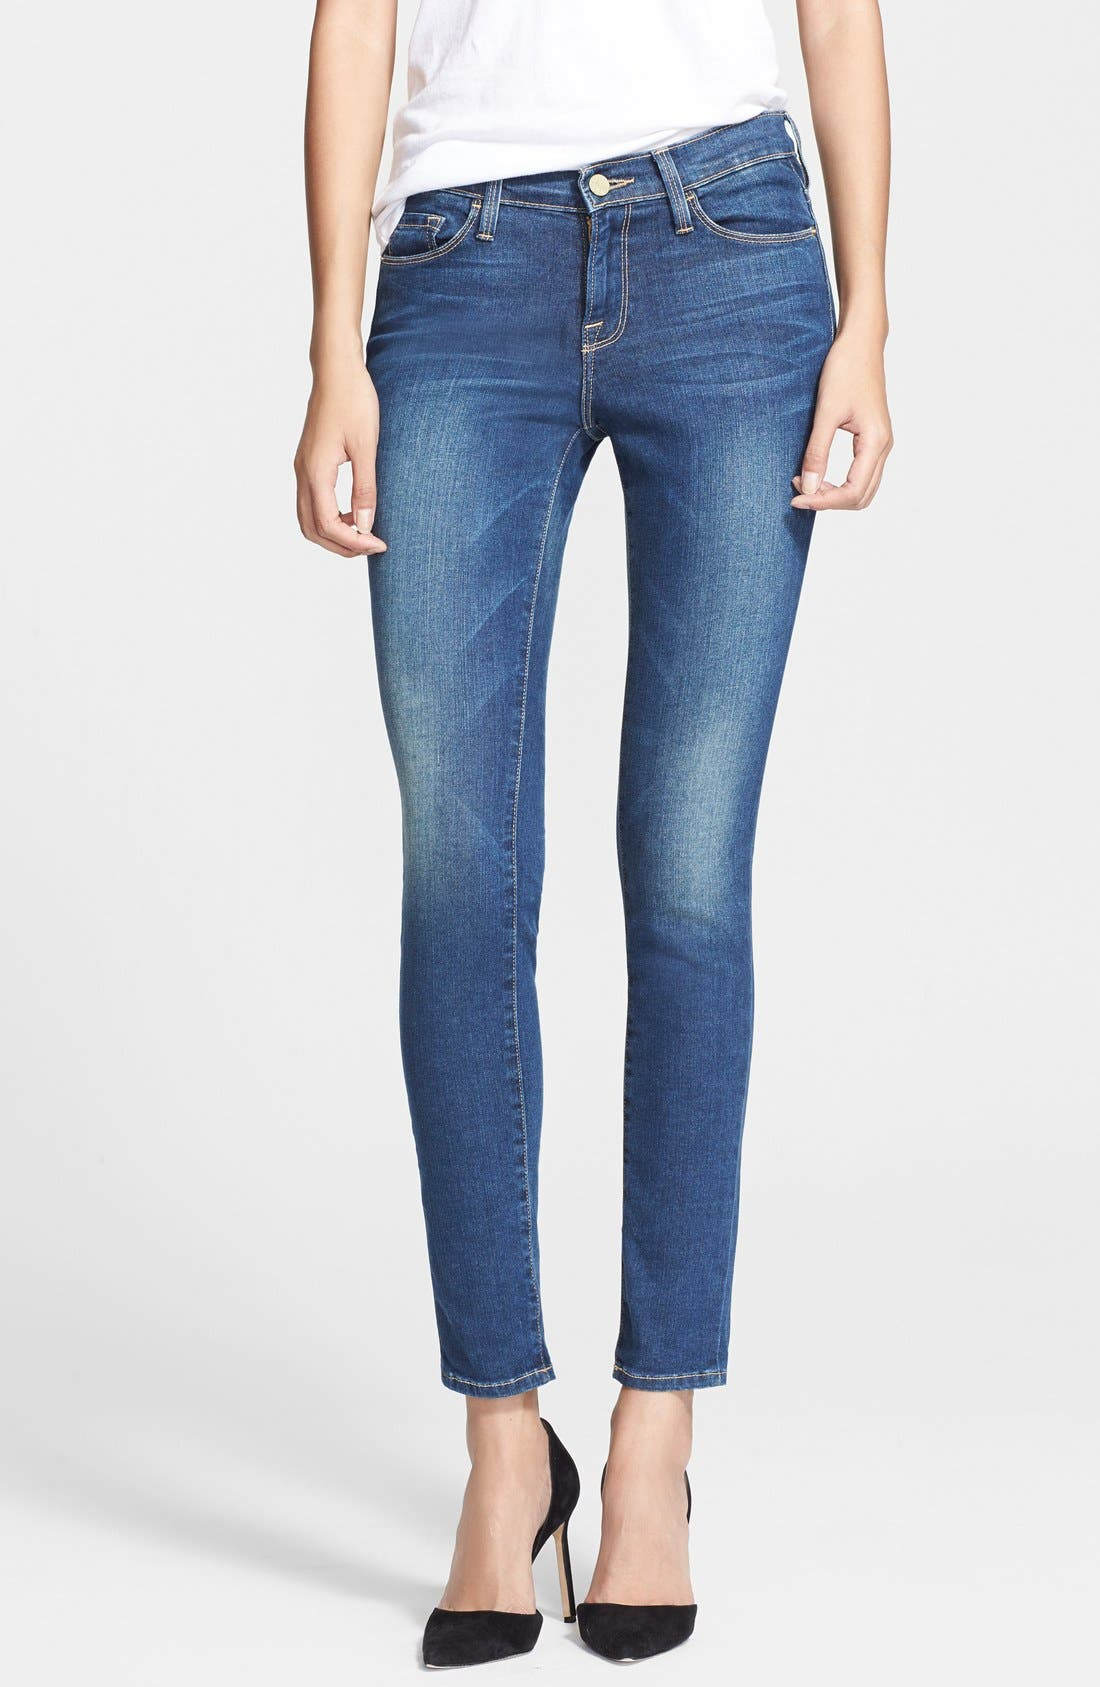 Alternate Image 1 Selected - Frame Denim 'Le Skinny de Jeanne' Jeans (Columbia Road)